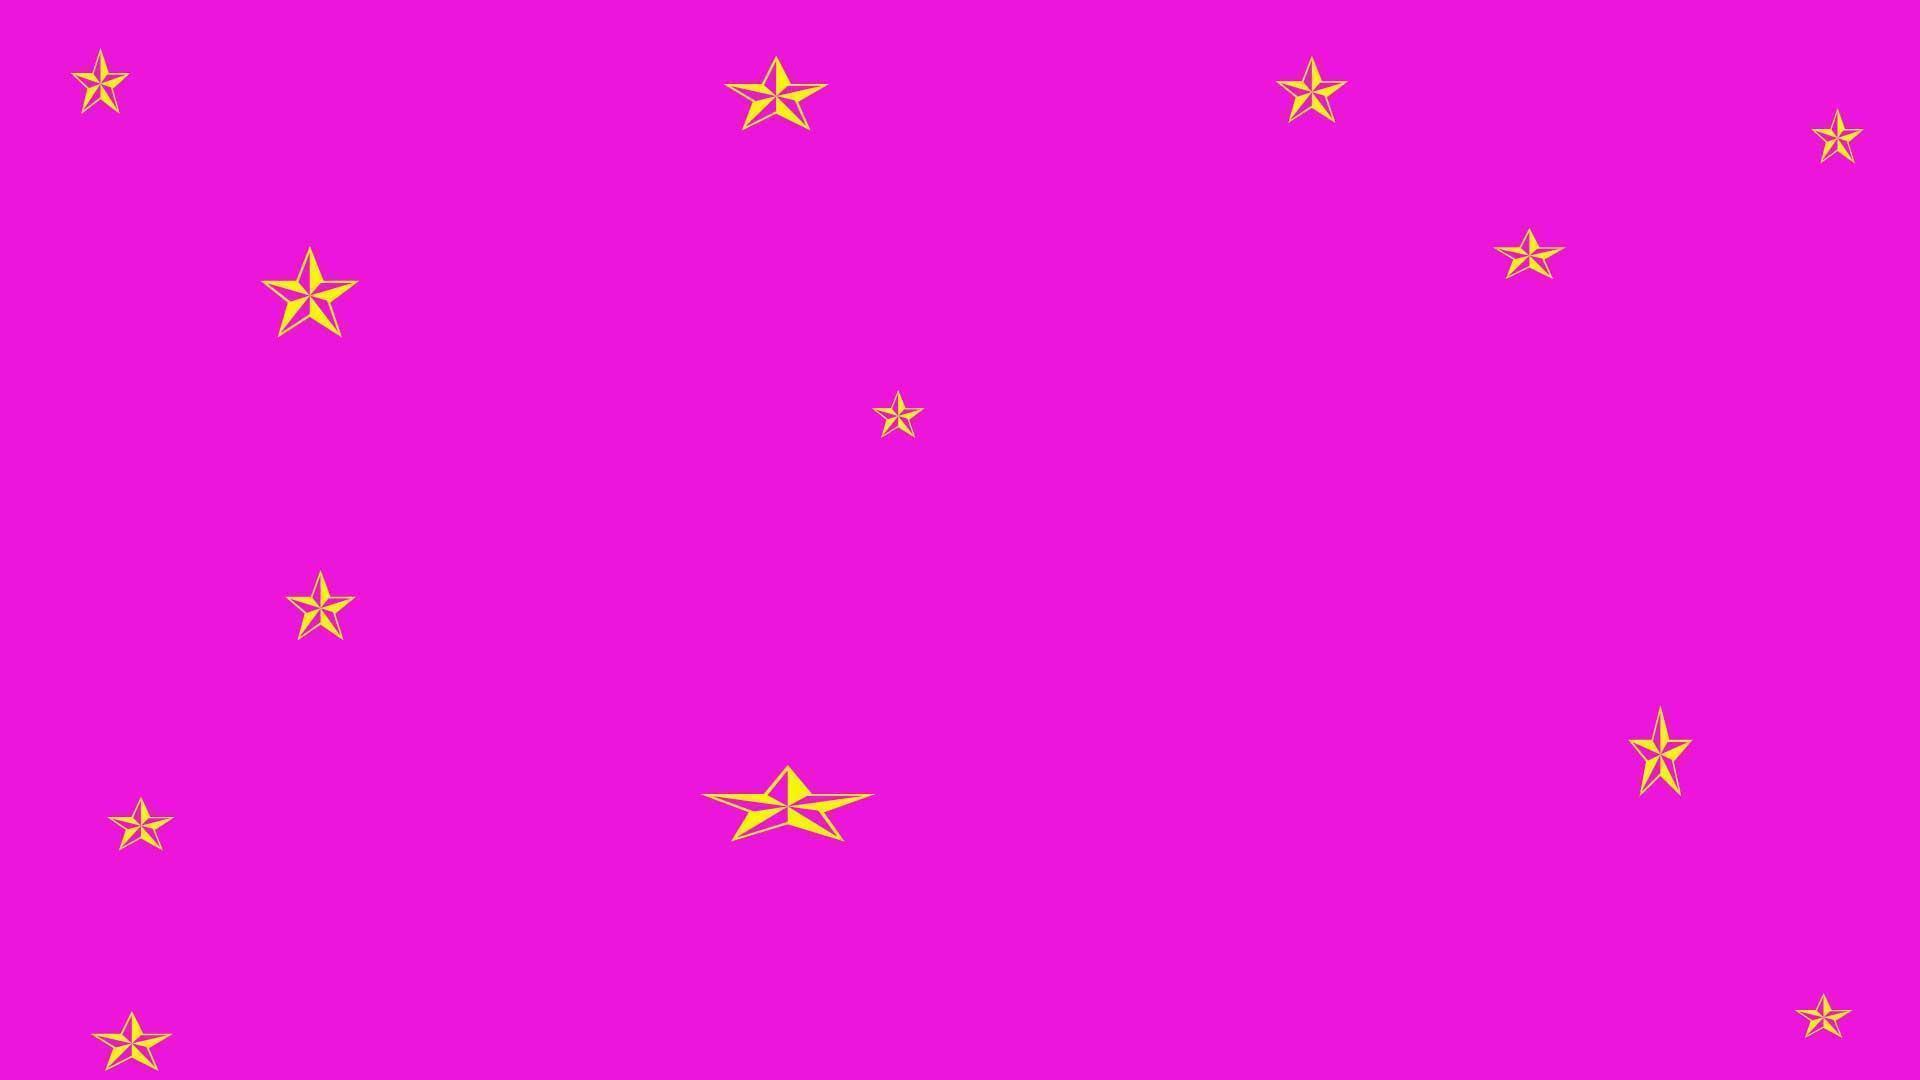 Bright Pink Backgrounds - Wallpaper Cave